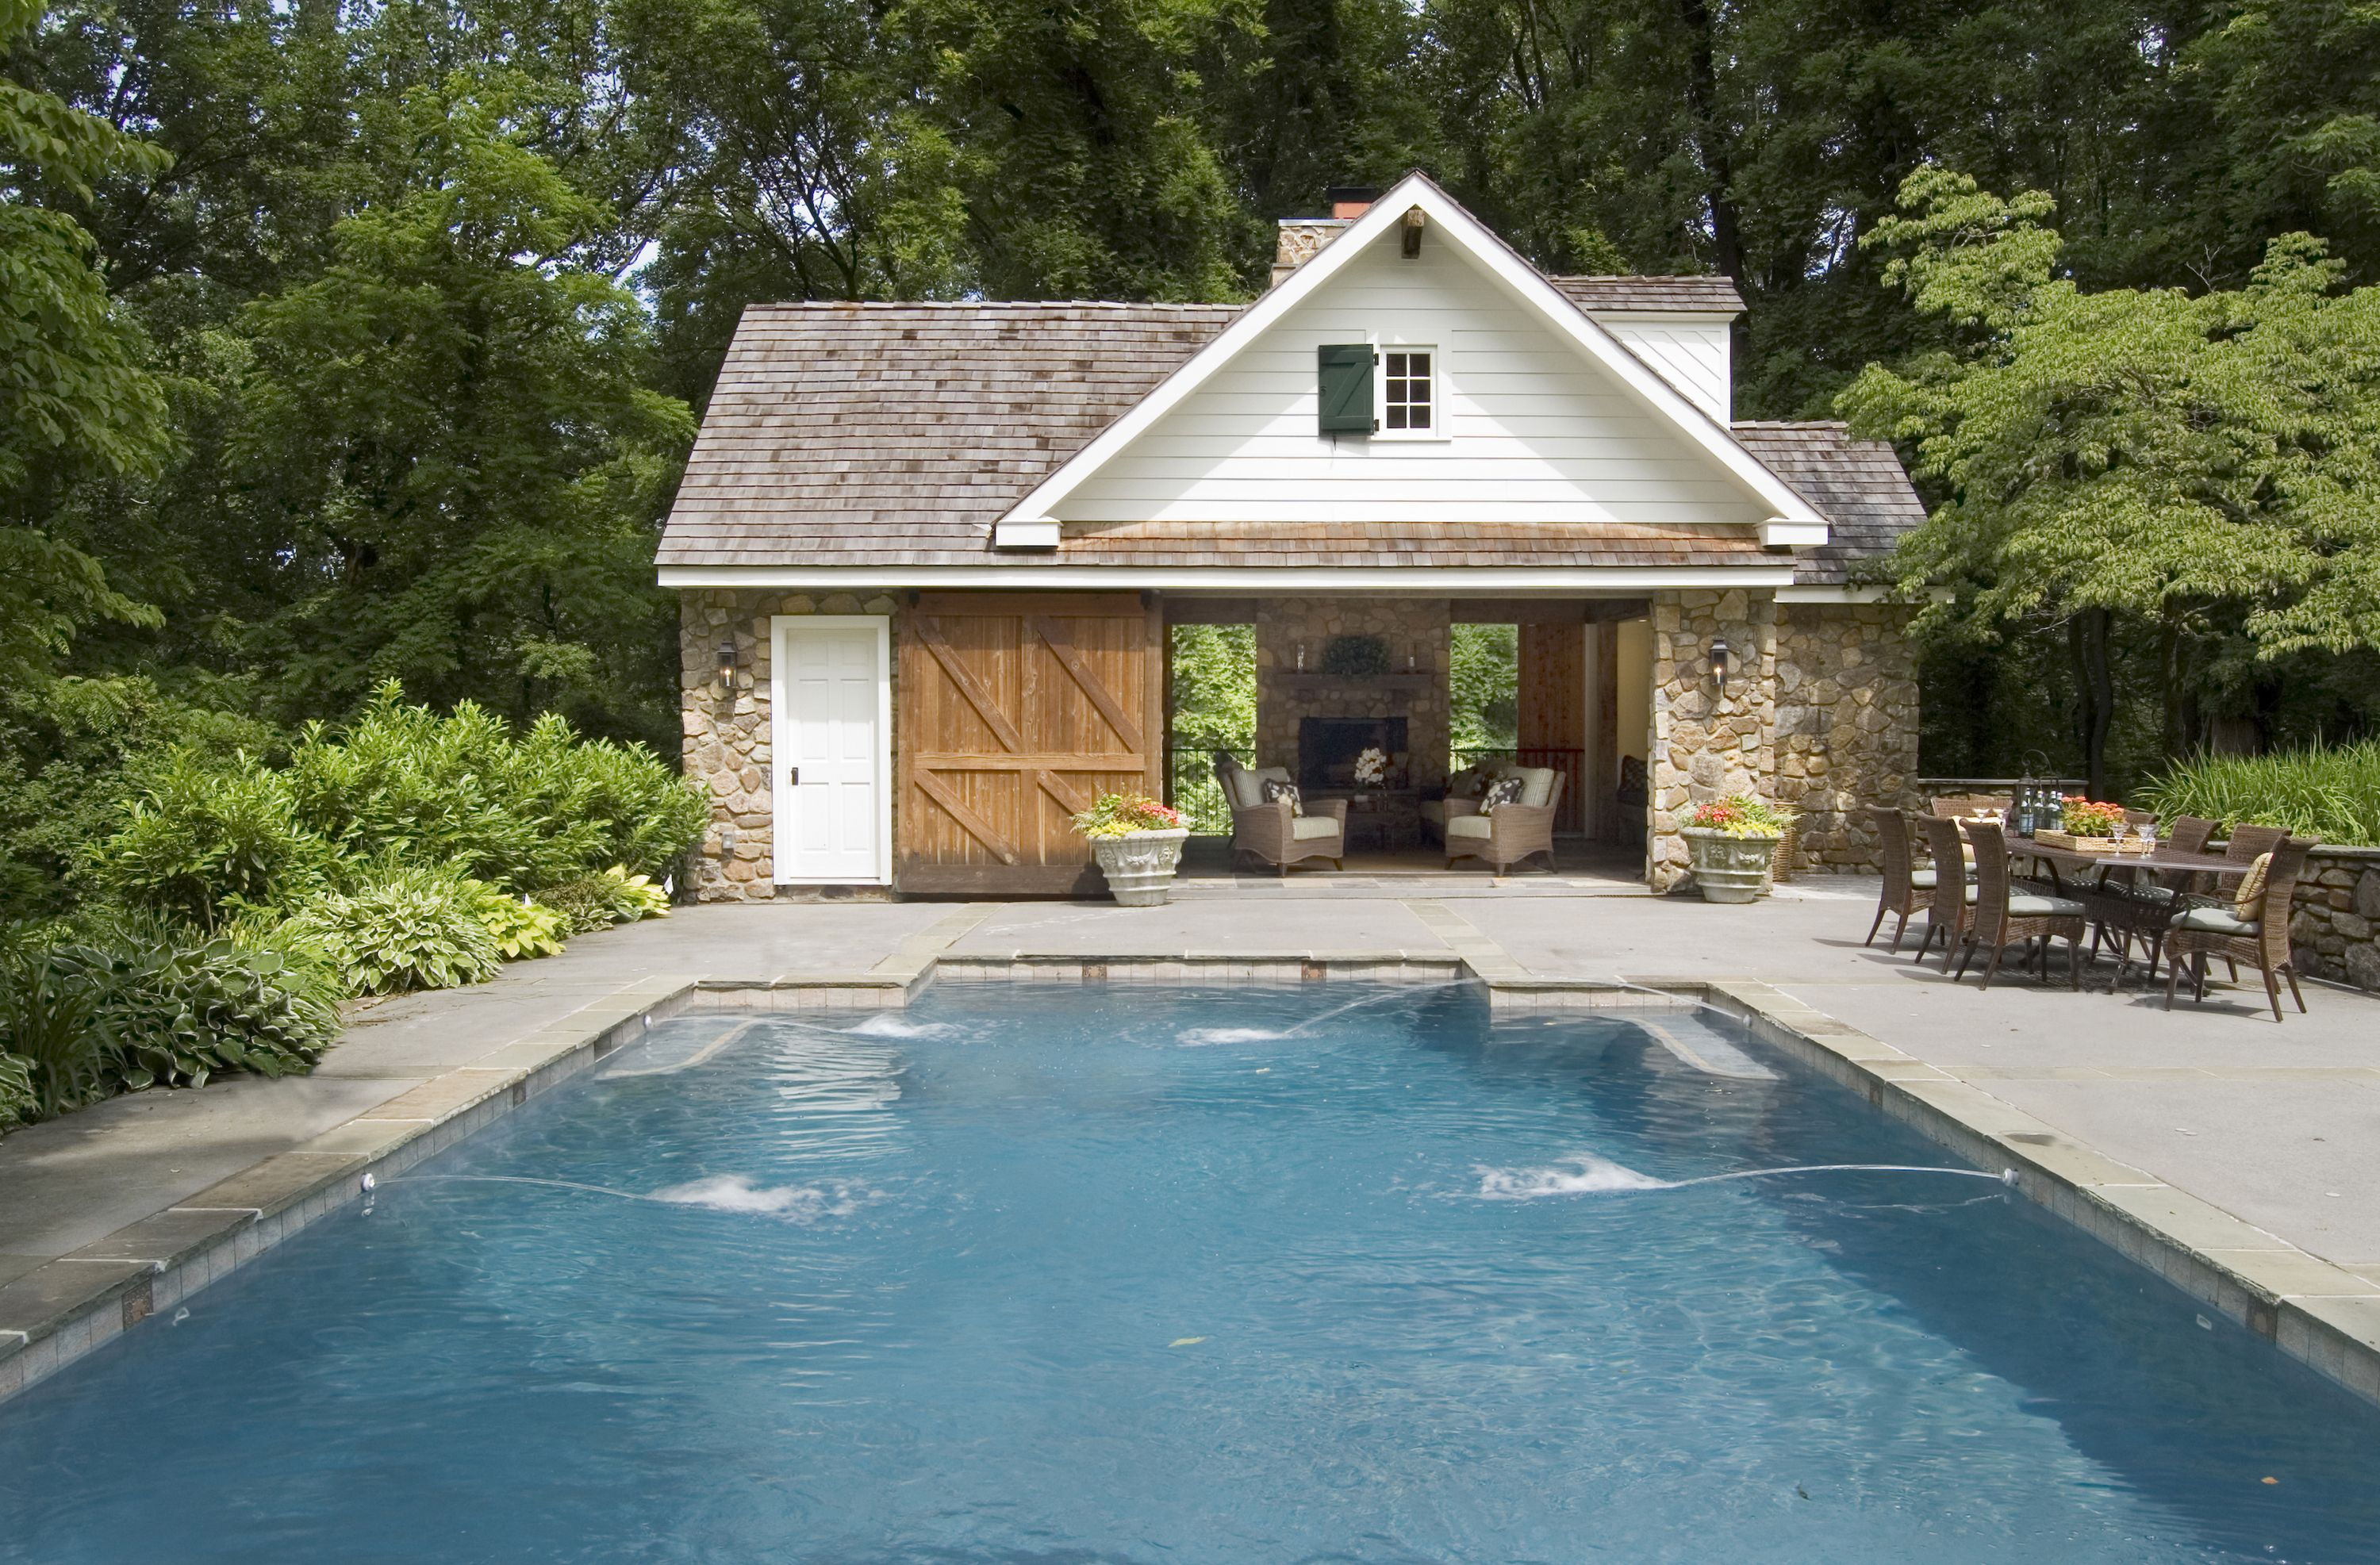 Pool House Modeled After A 9th Century Colonial Farmhouse  Look At The  Built In